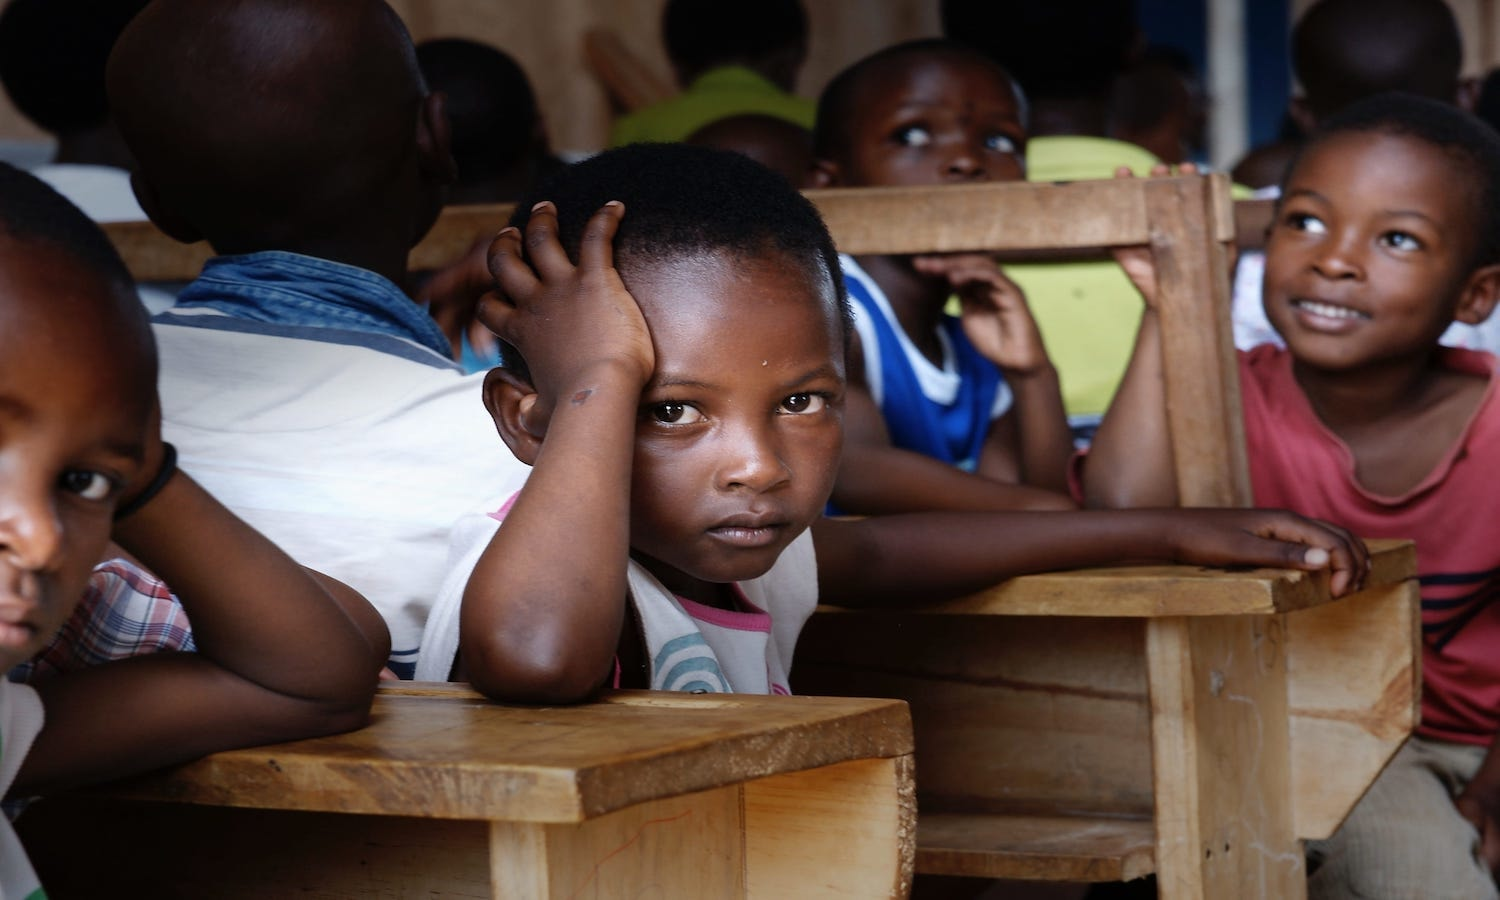 African children in a schoolhouse